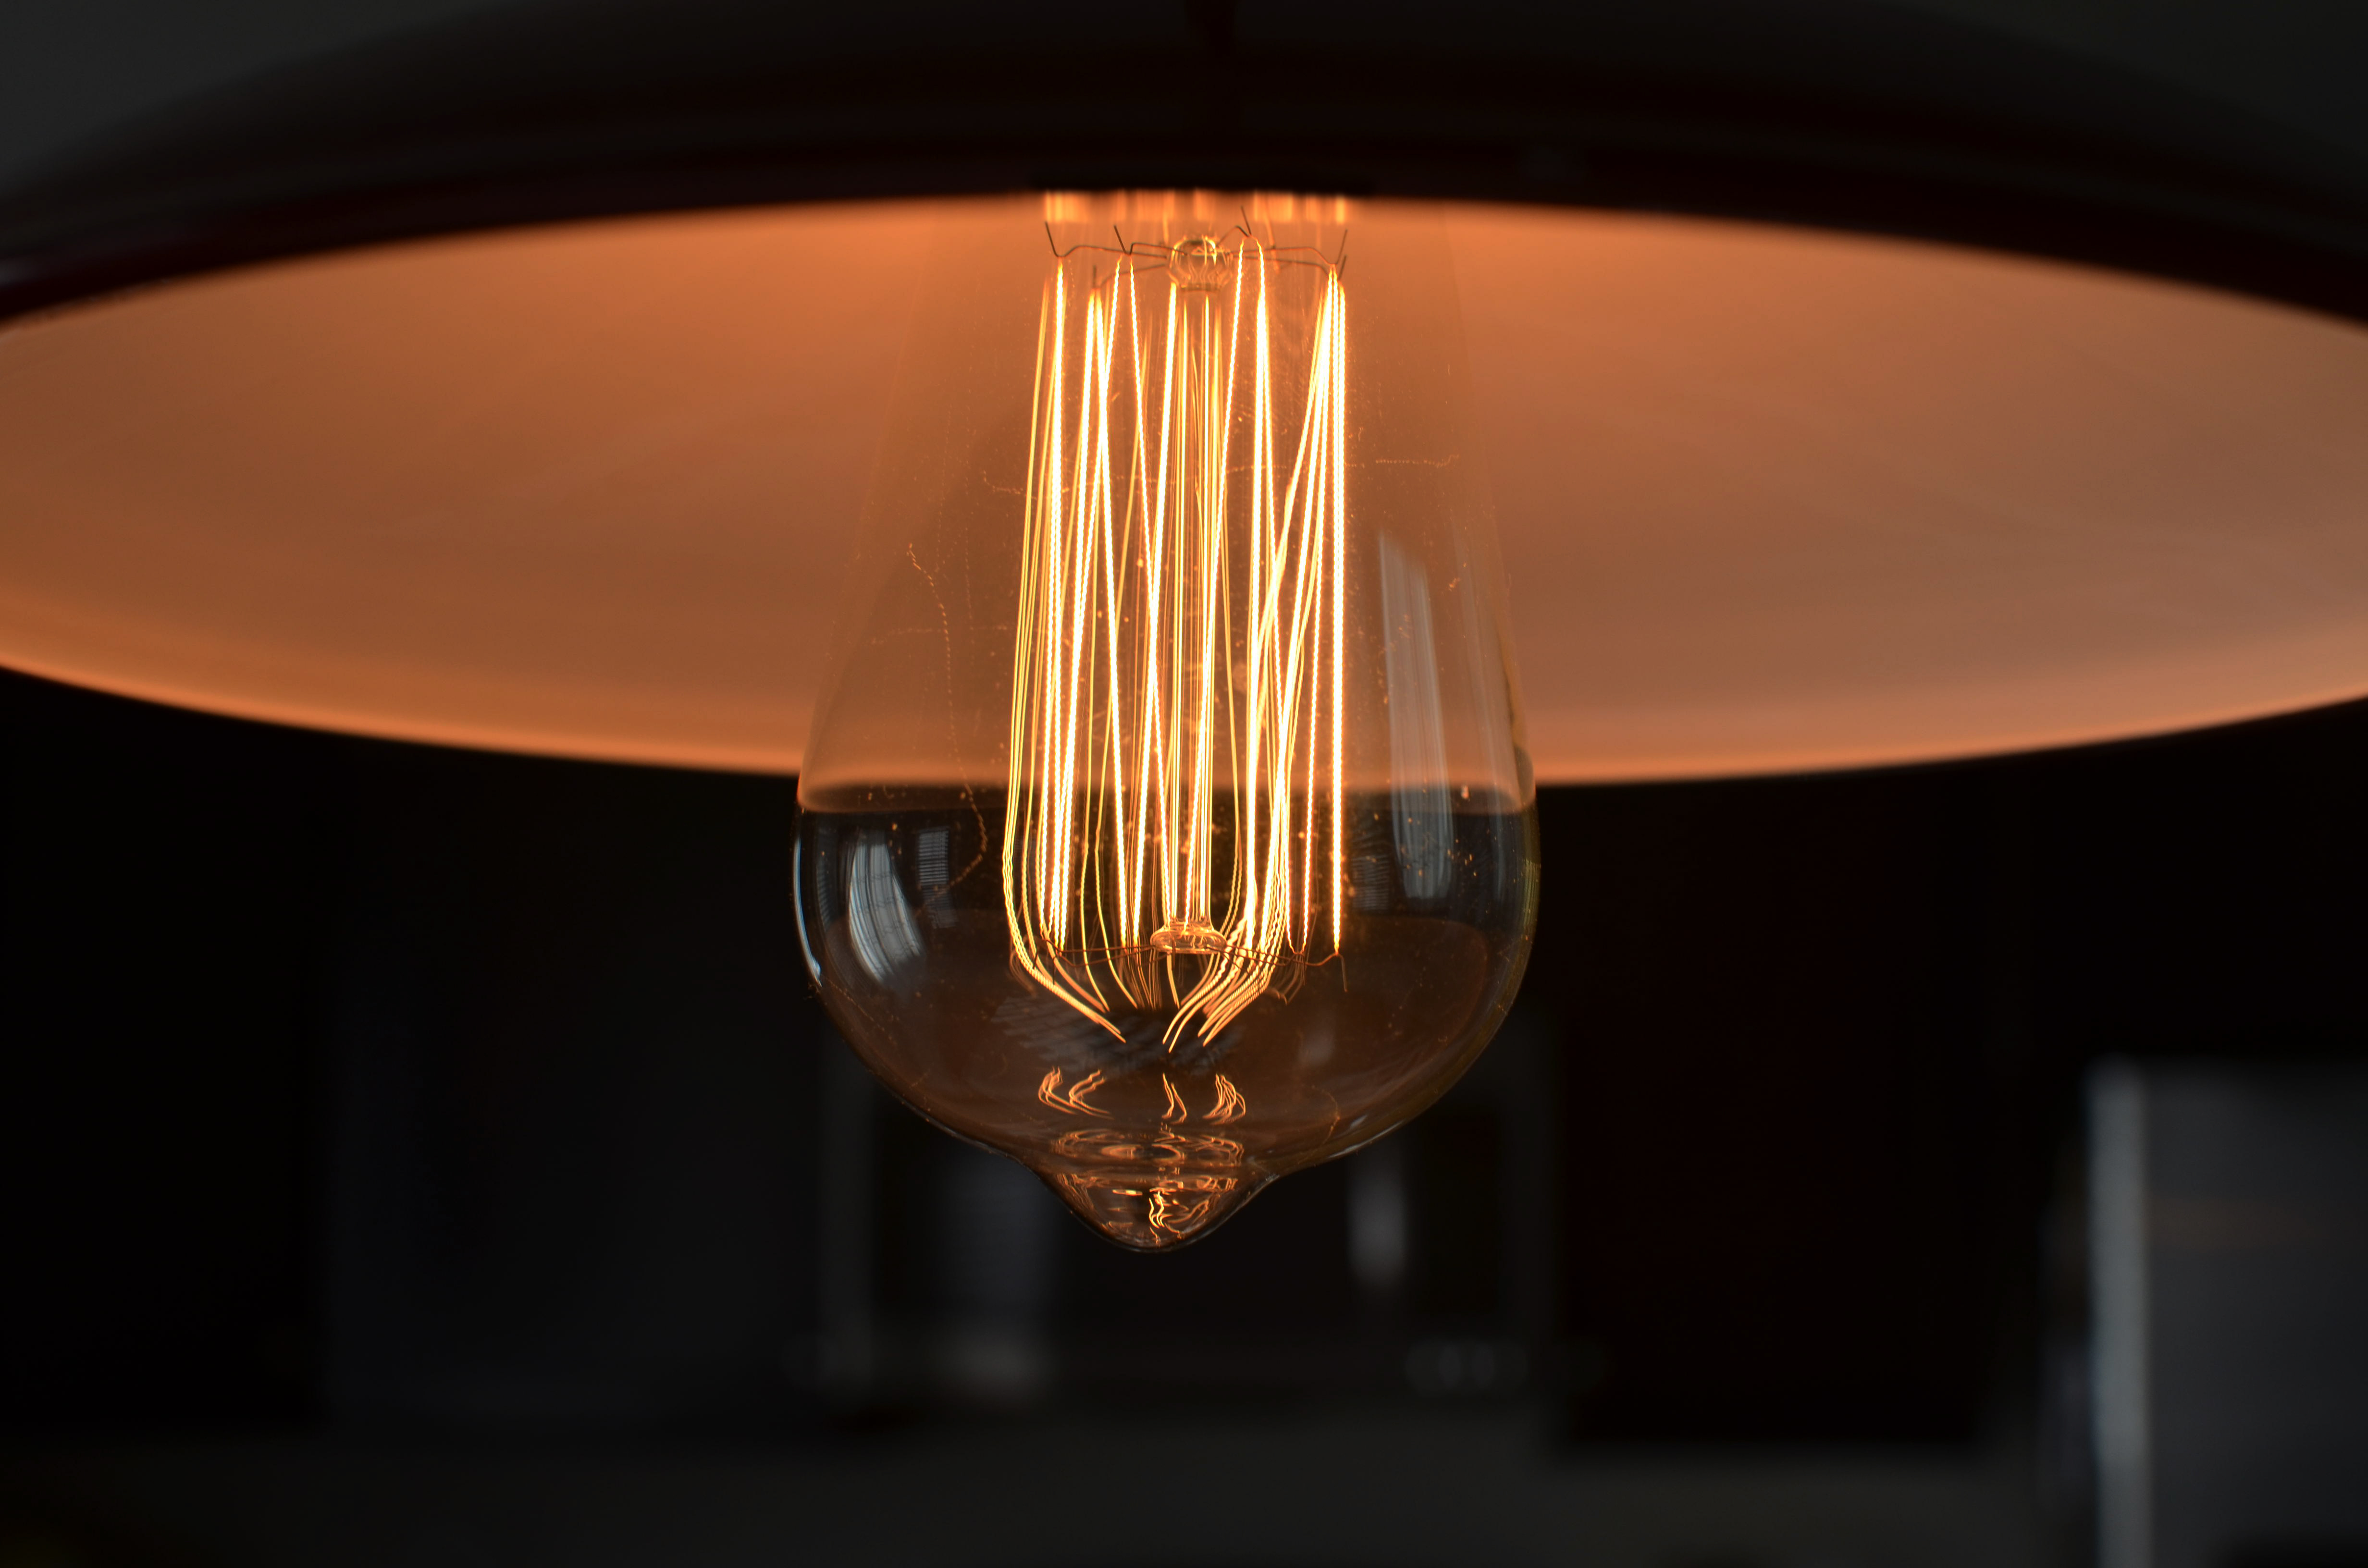 Incandescent bulb with flat shade